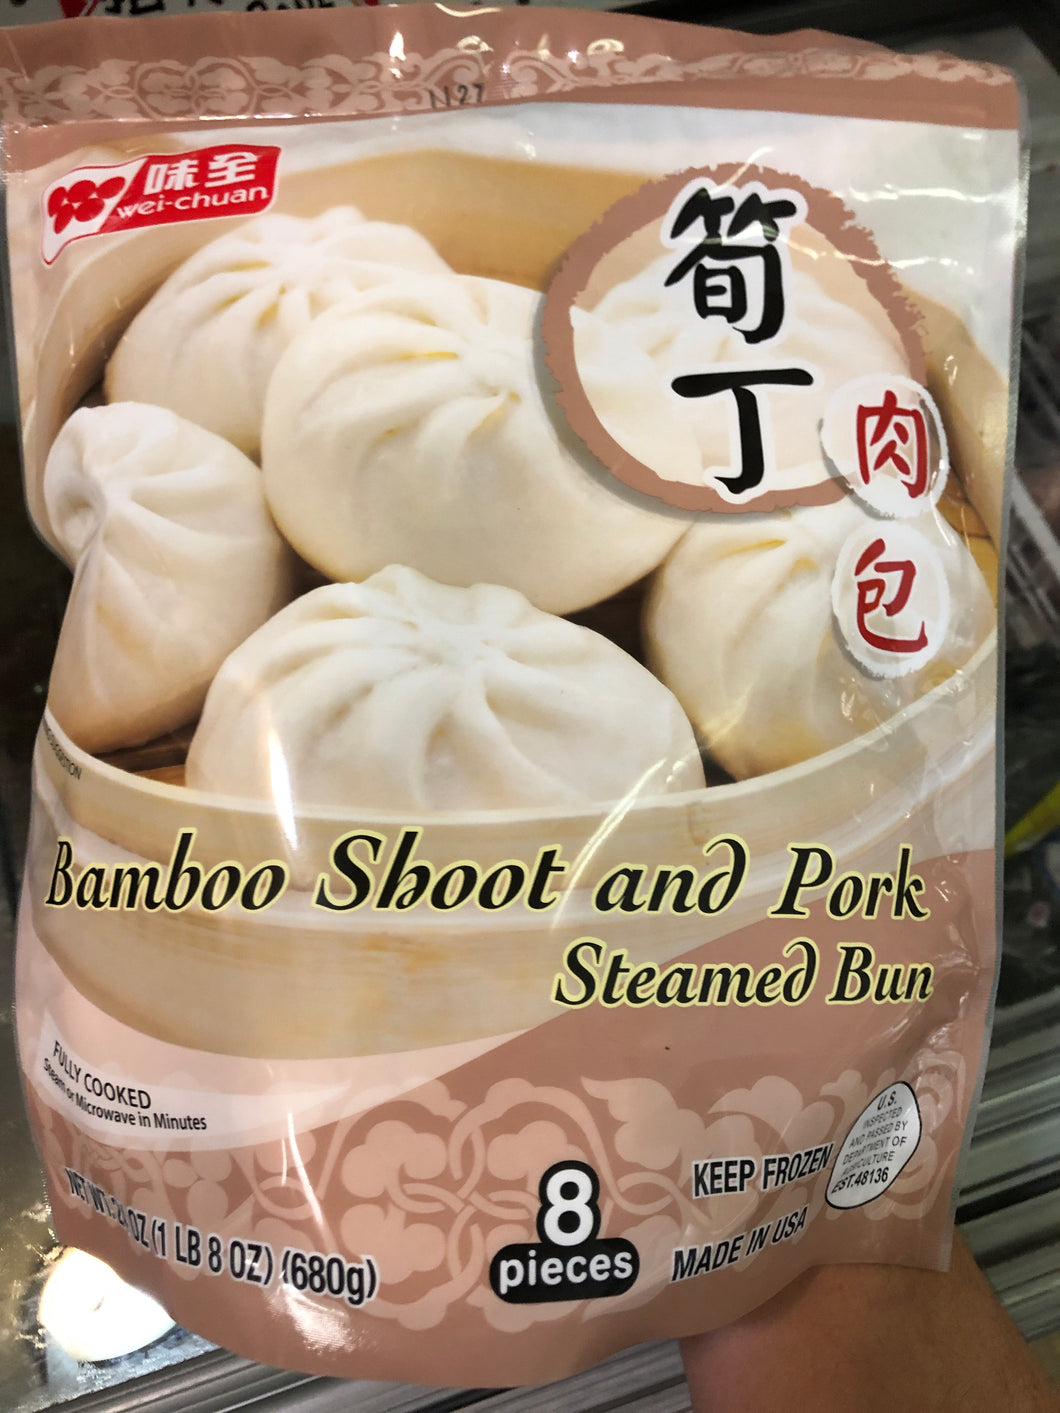 味全牌笋丁肉包 WEI-CHUAN BAMBOO SHOOT & PORK STEAMED BUN